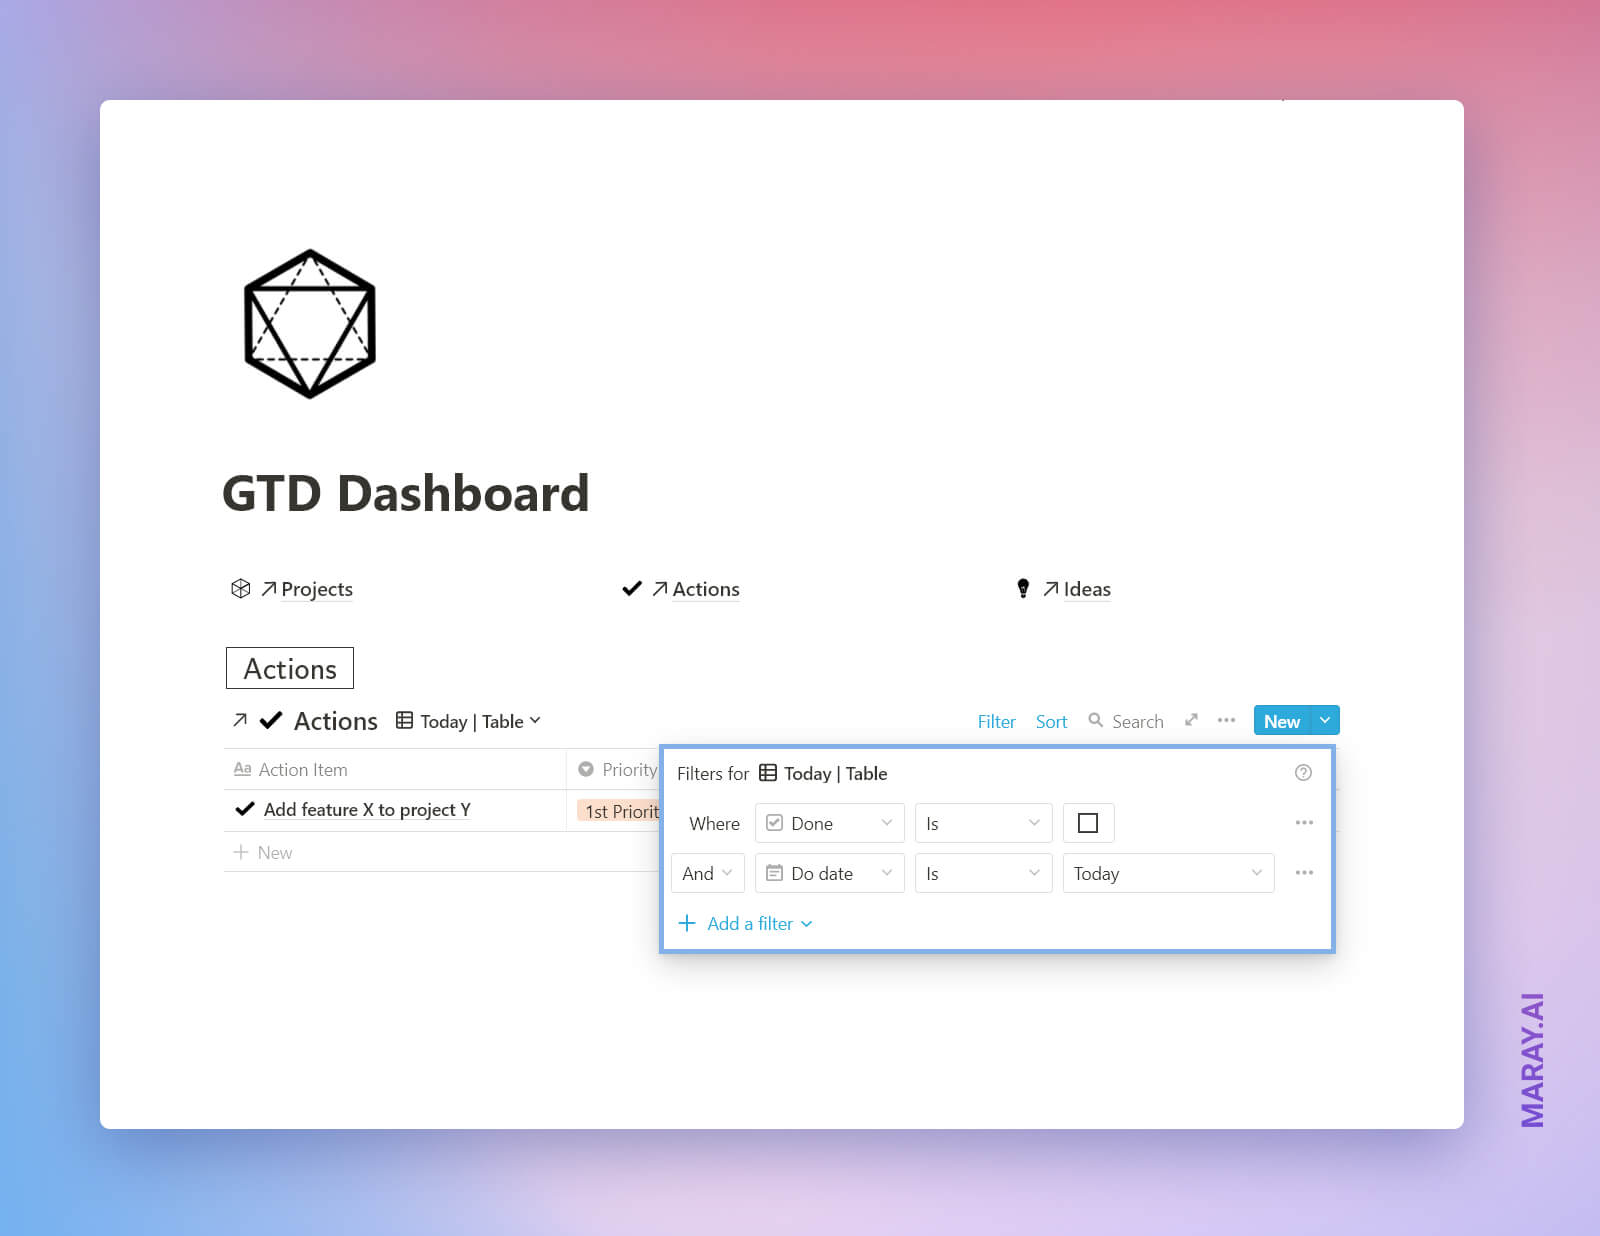 Step-by-step guide: create Actions view for the GTD Dashboard with the following filtering and sorting.